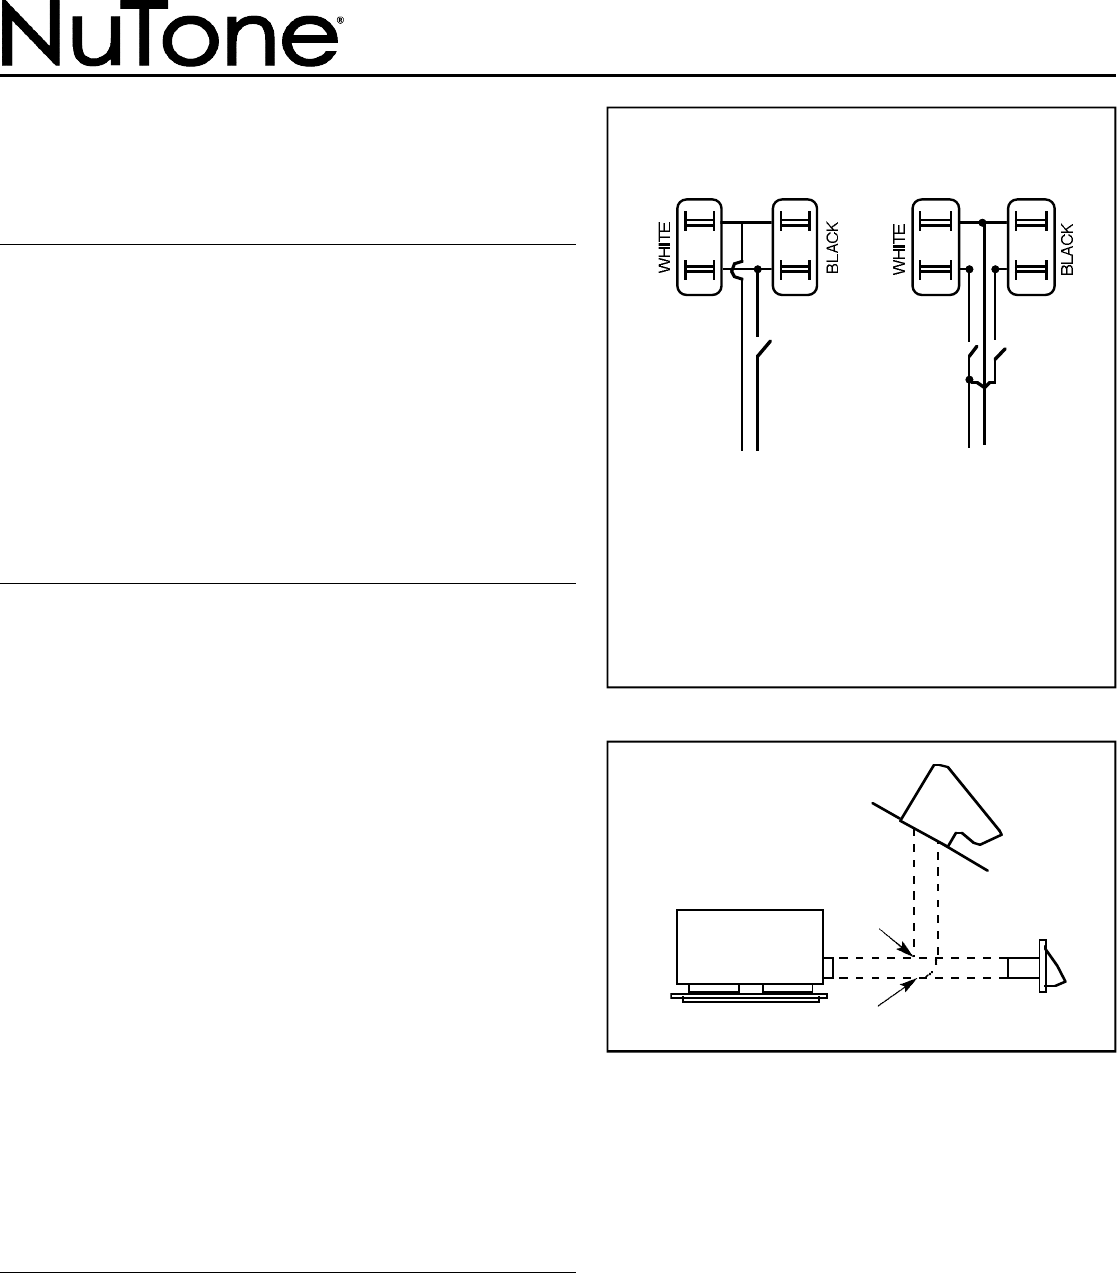 Nutone F305c Installation Instructions Toggle Switch Wiring